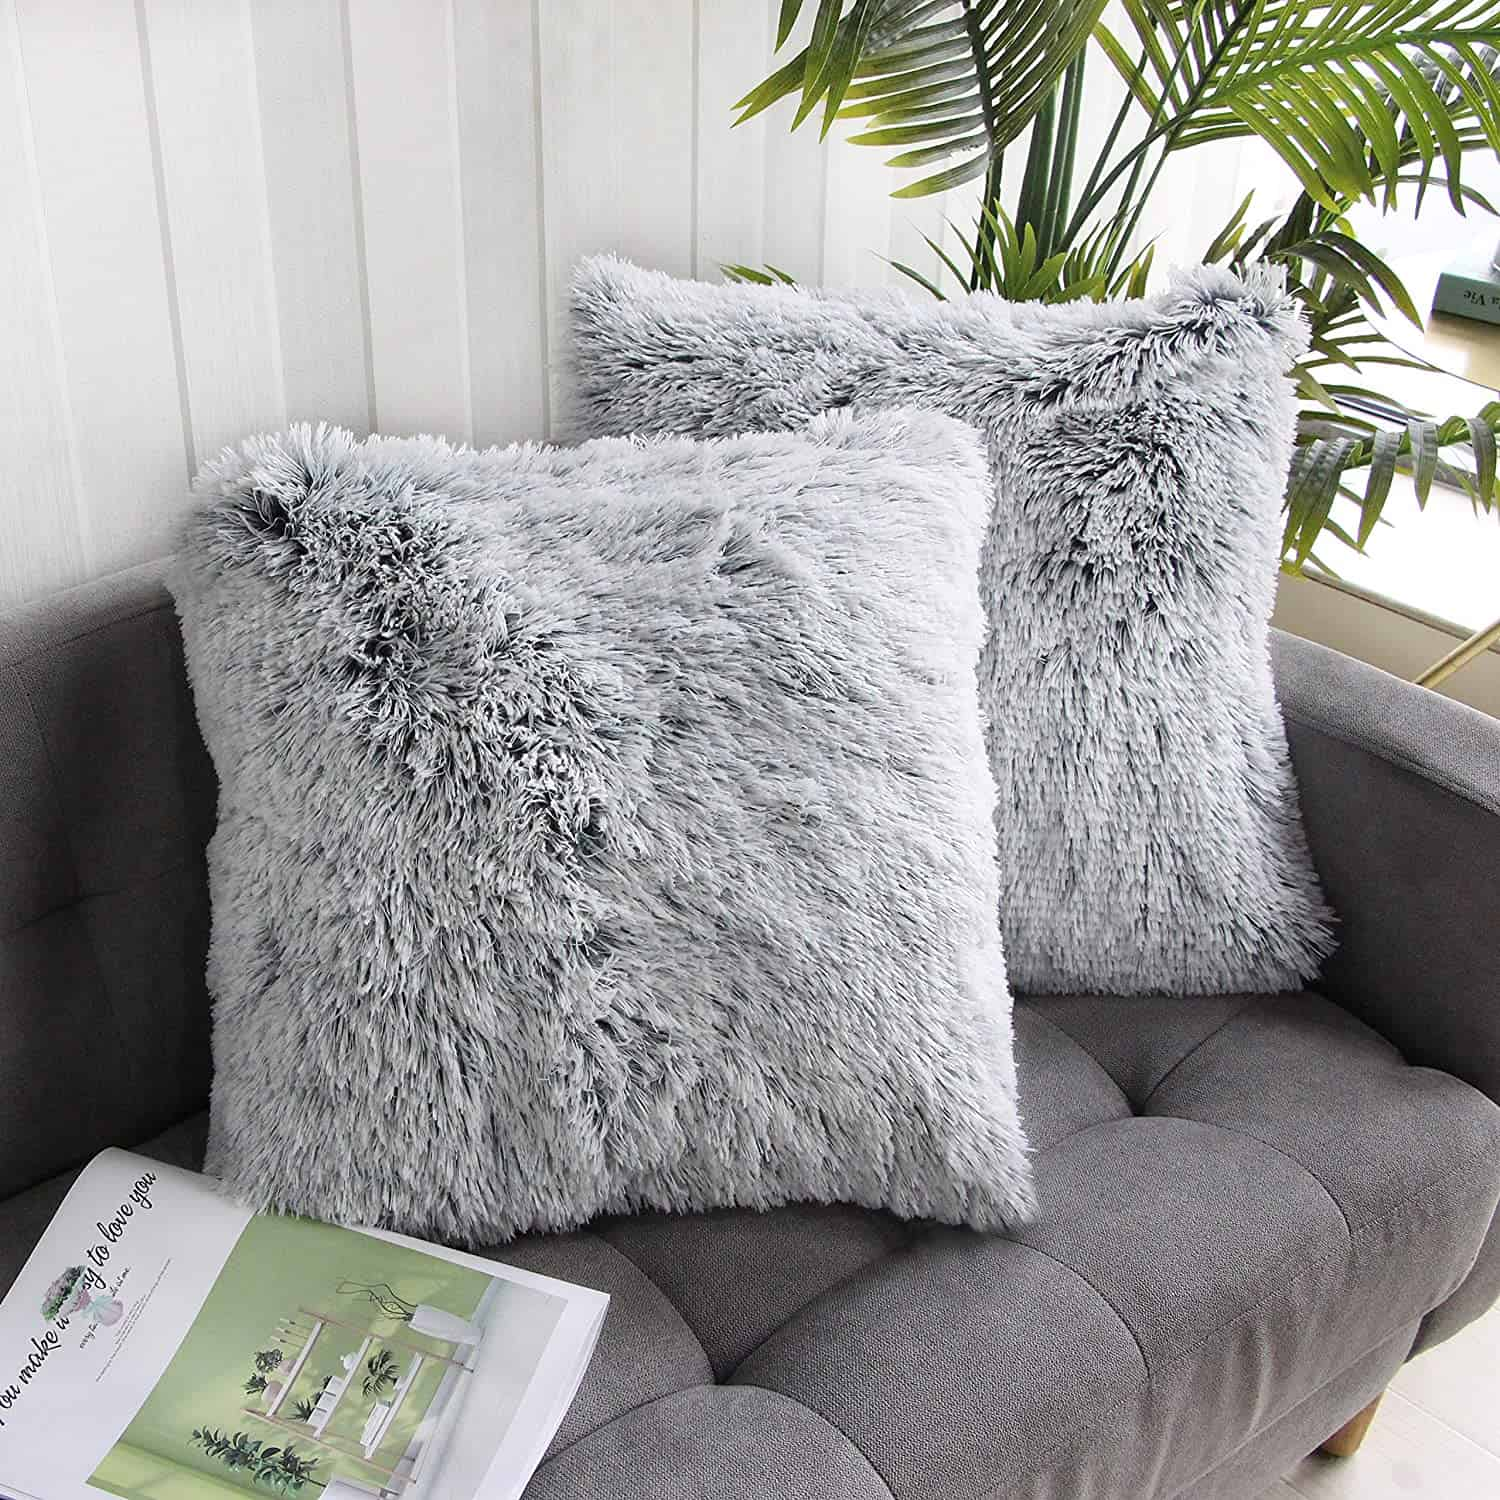 Soft Faux Fur Pillow Ideas For A Gray Couch